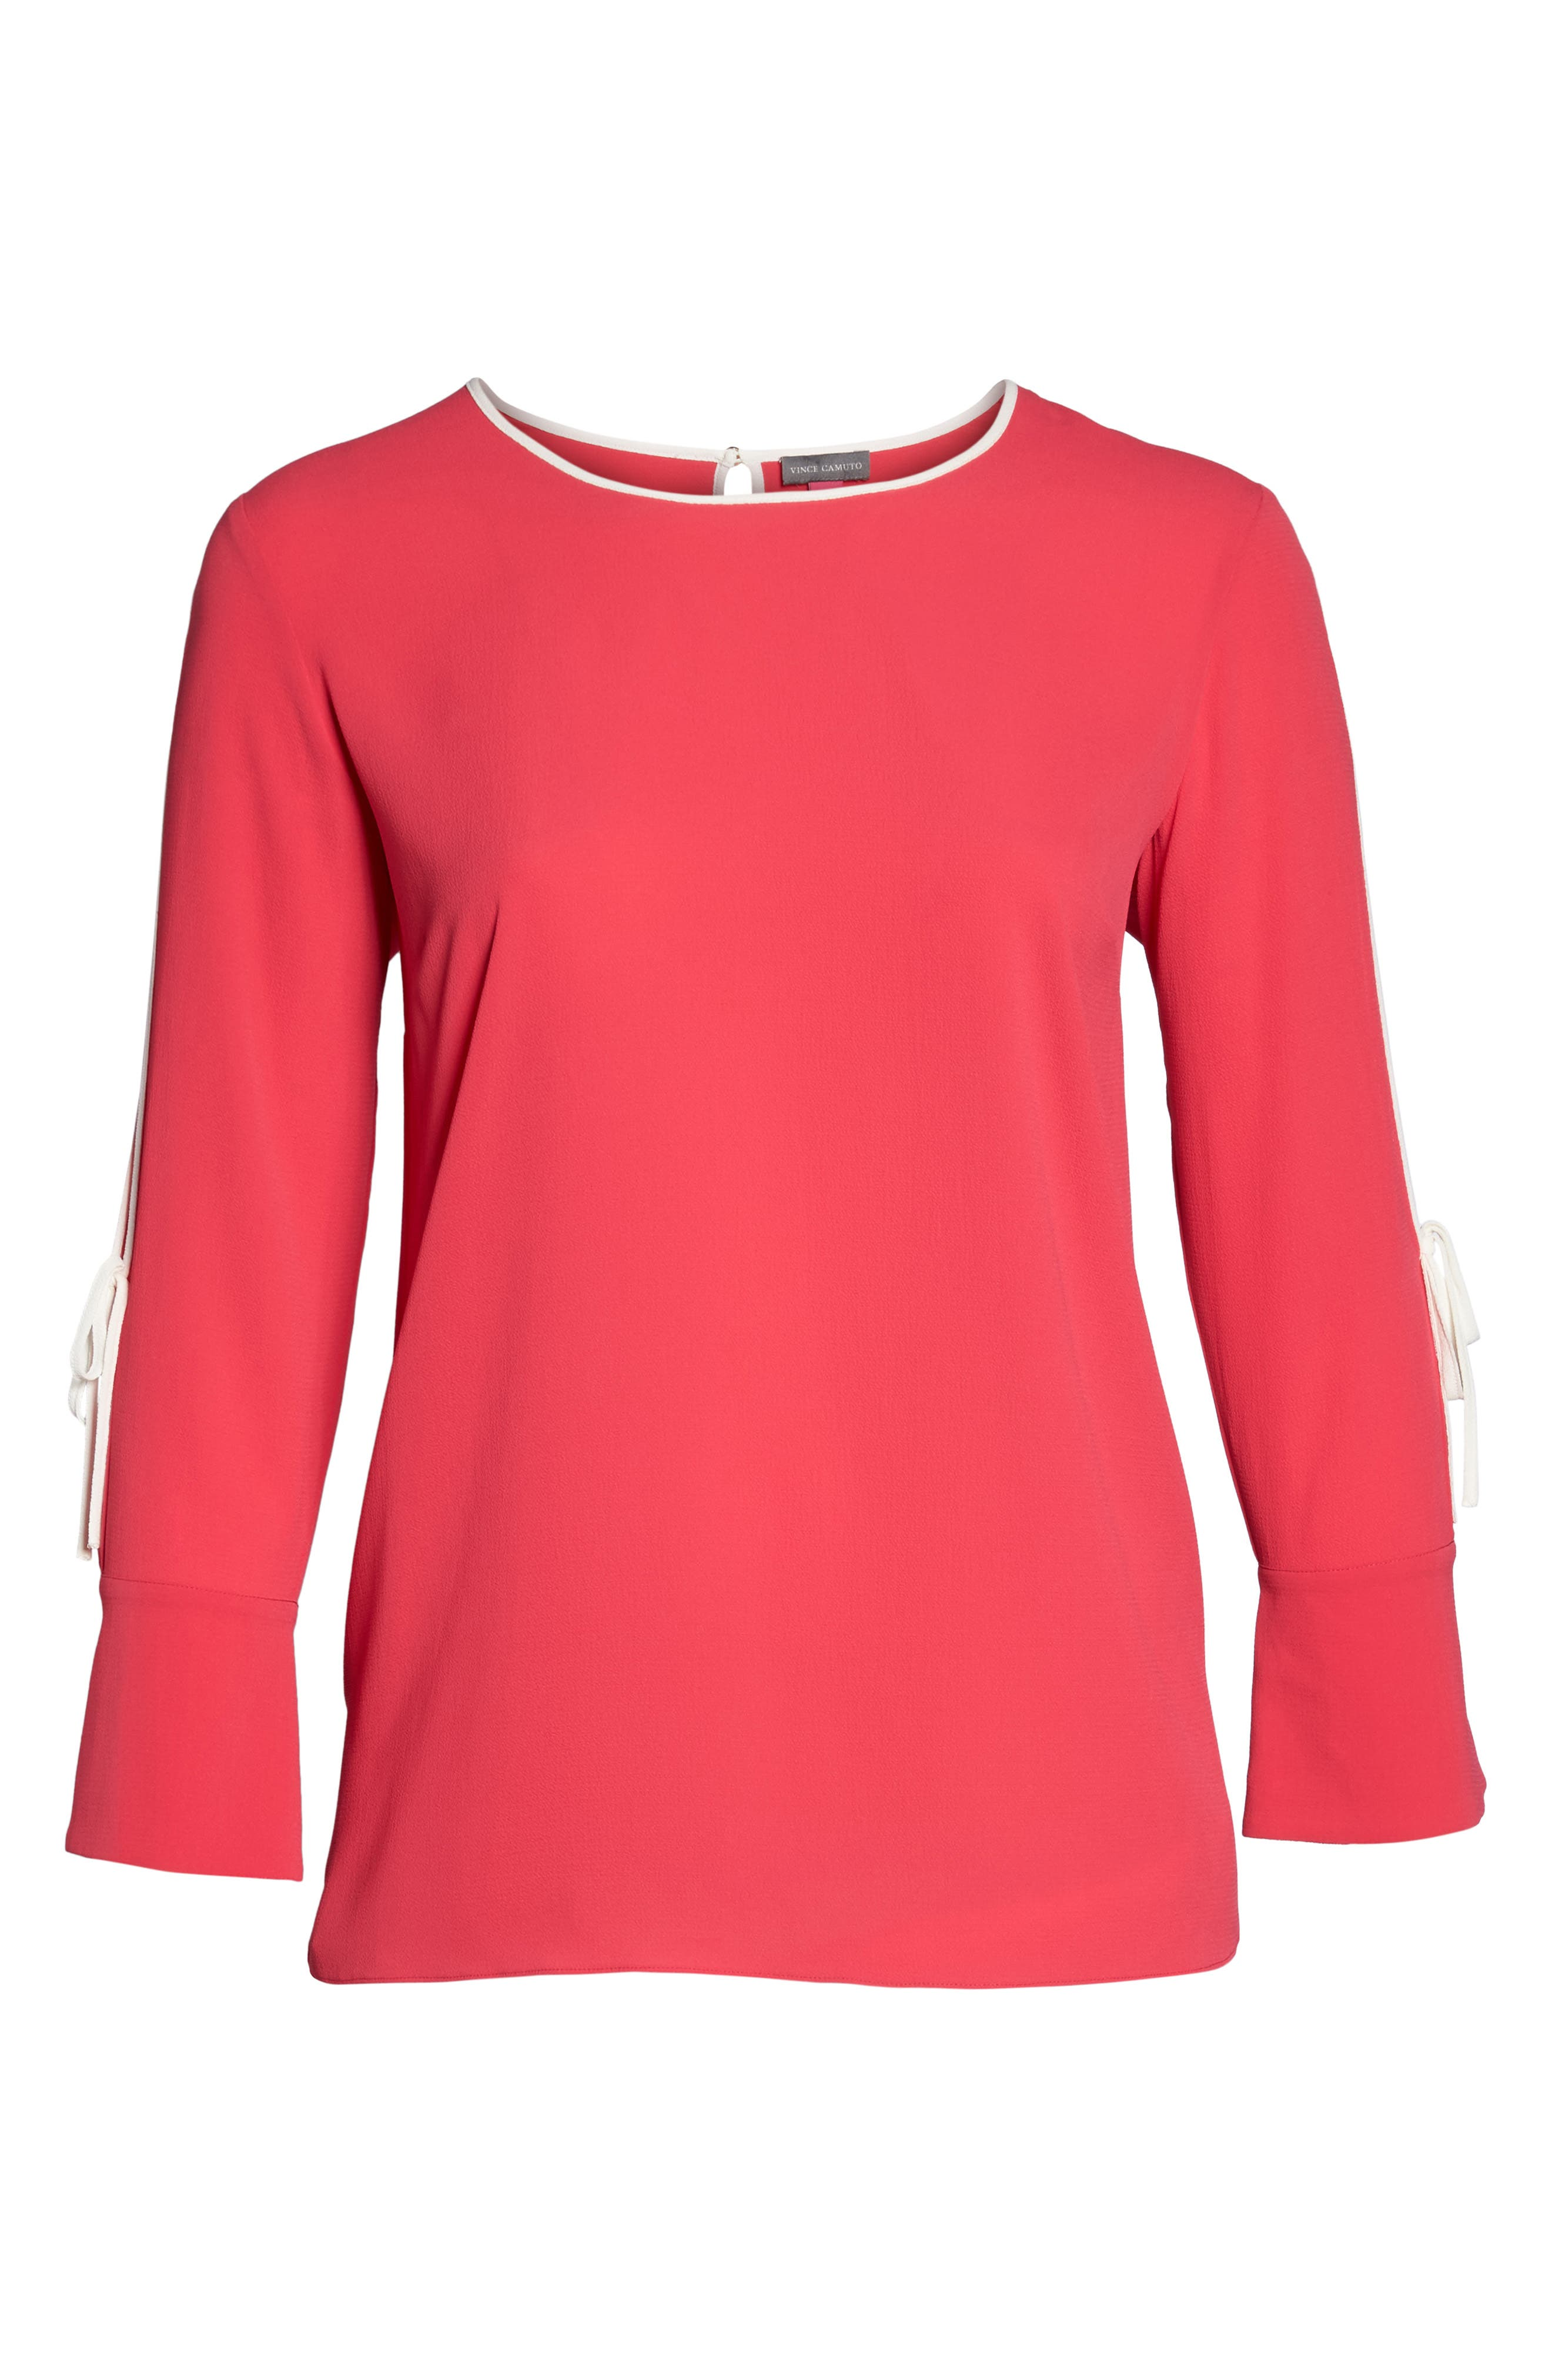 Bell Cuff Split Sleeve Shirt,                             Alternate thumbnail 6, color,                             Vibrant Pink